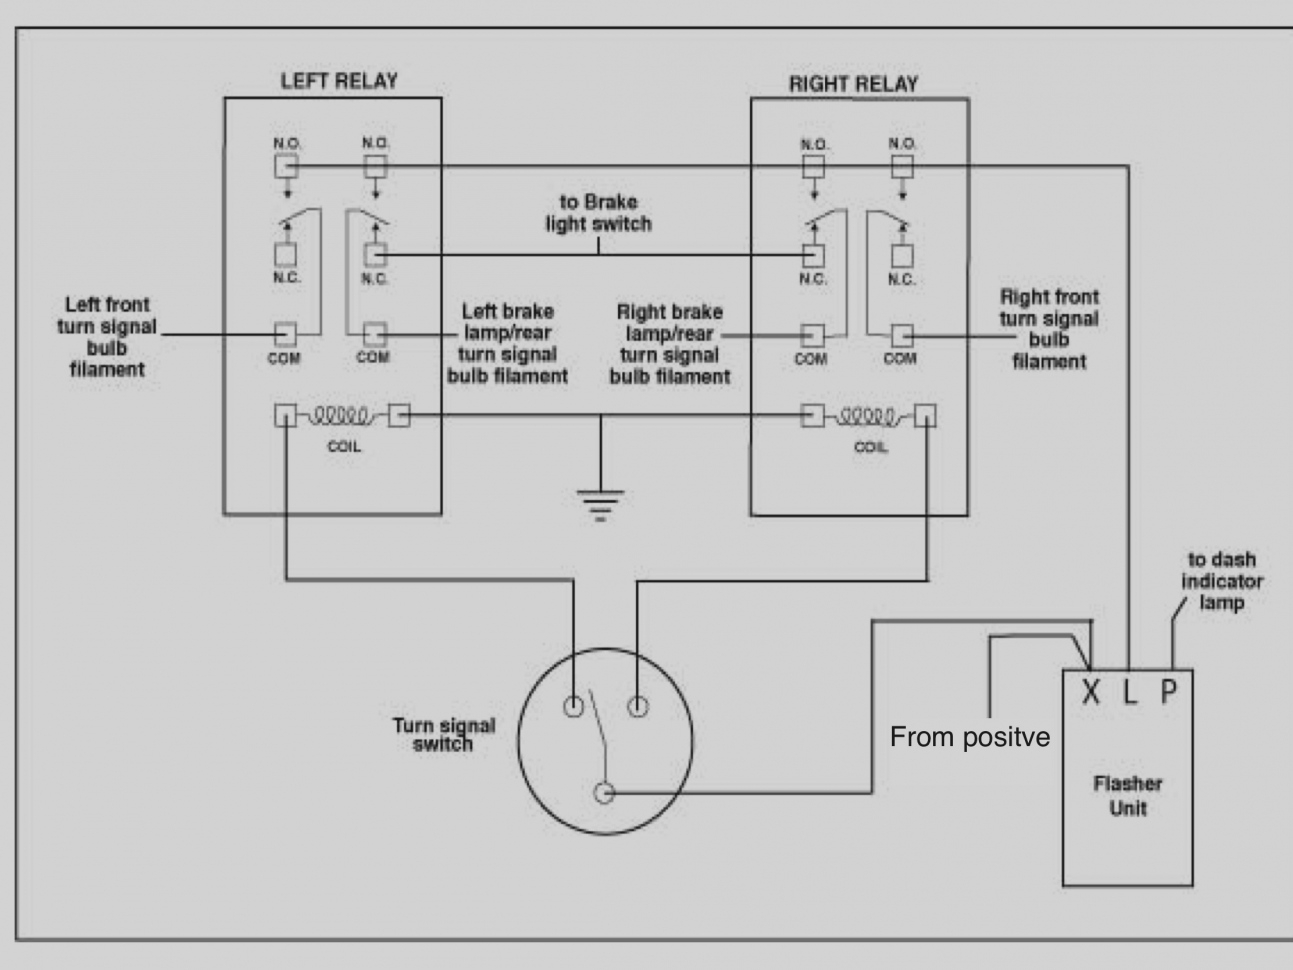 2012 polaris ranger 800 xp wiring diagram auto electrical wiring polaris  electrical schematics 2012 polaris ranger